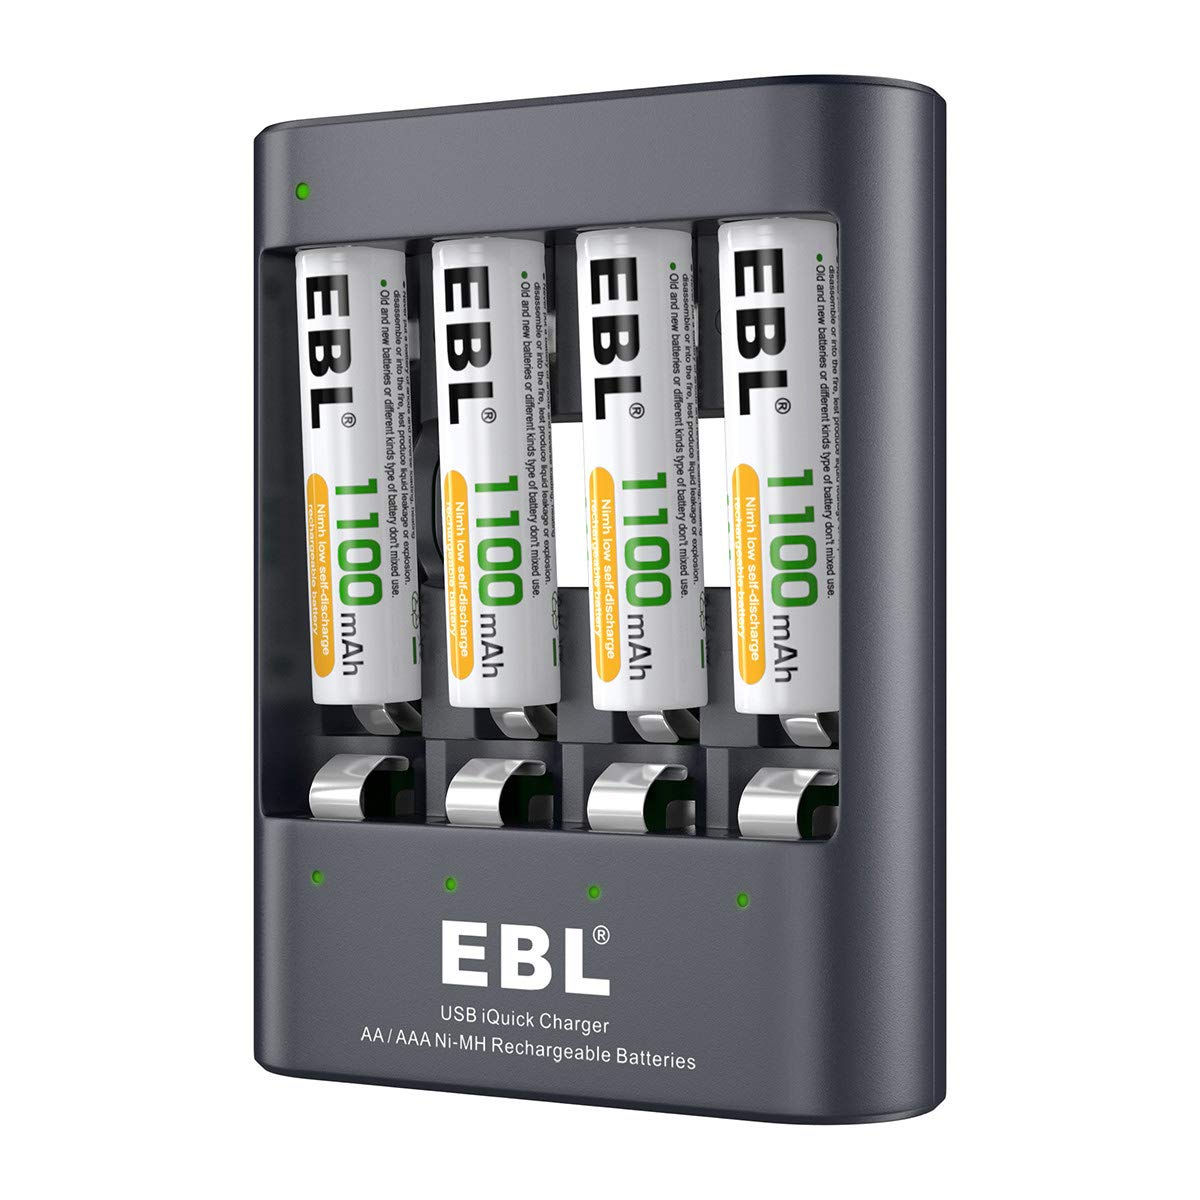 EBL 4 x 1100mAh AAA Rechargeable Batteries Plus USB Fast Battery Charger, Batteries with Charger